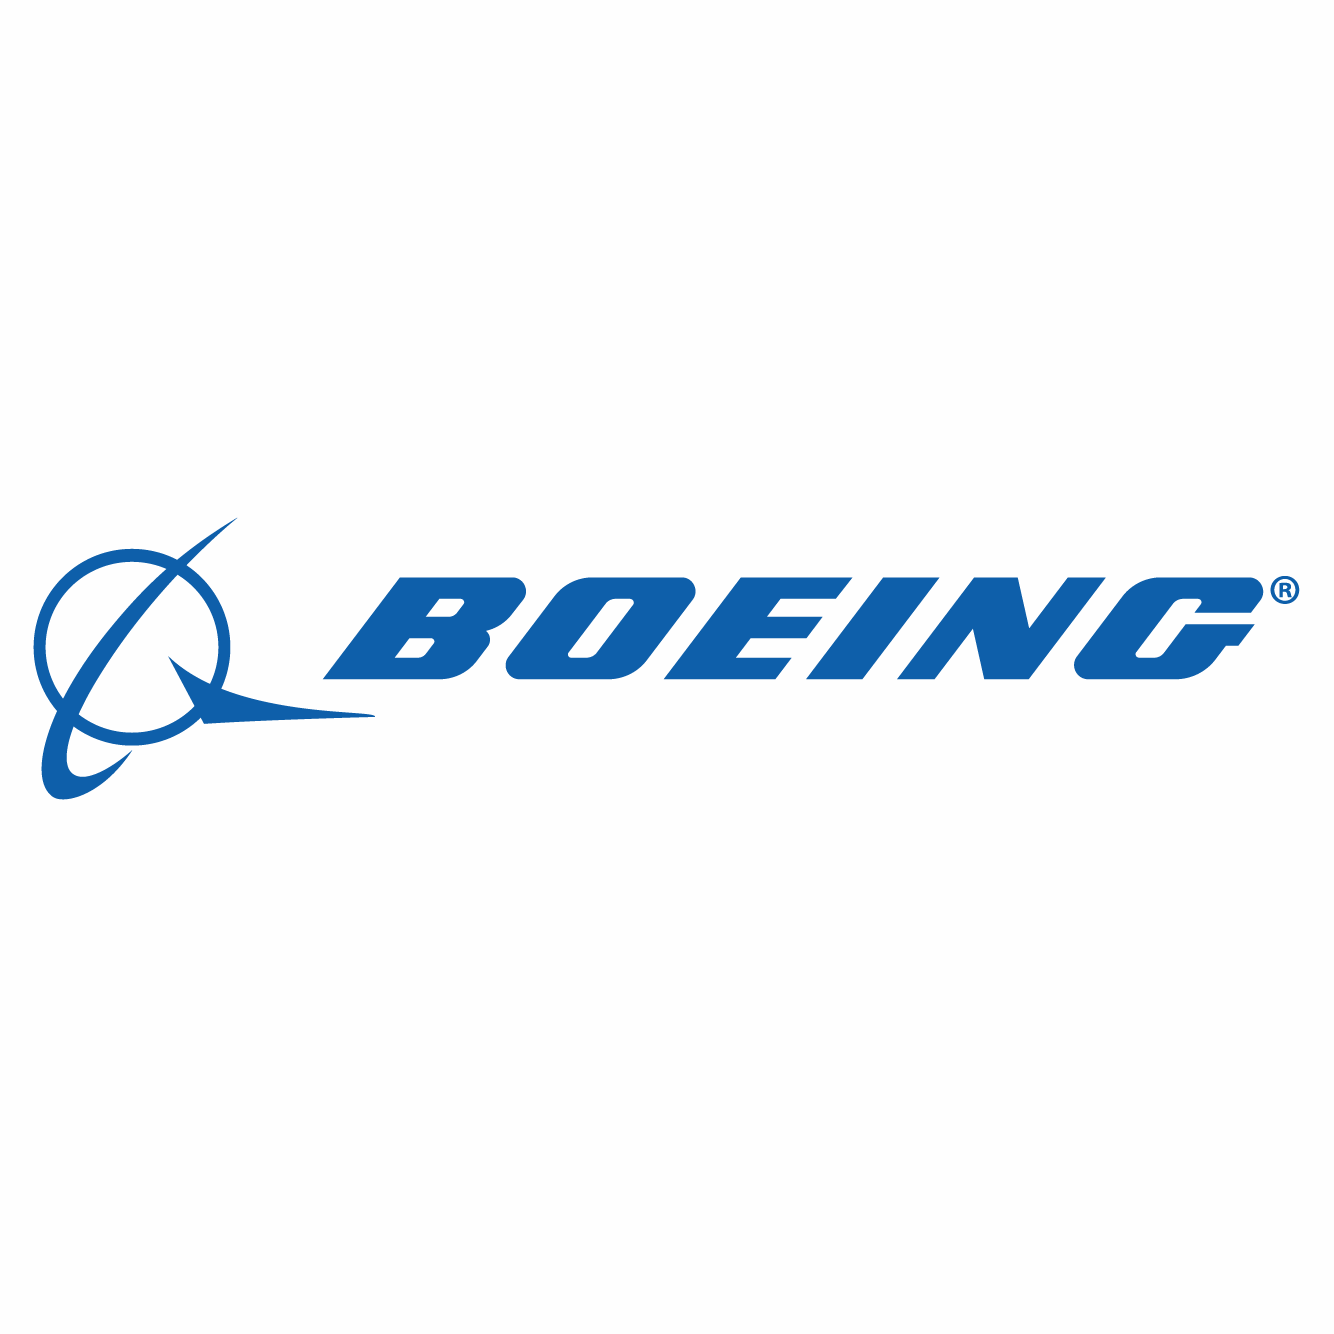 https://www.securetech.ae/wp-content/uploads/2019/02/07.BOEING.png